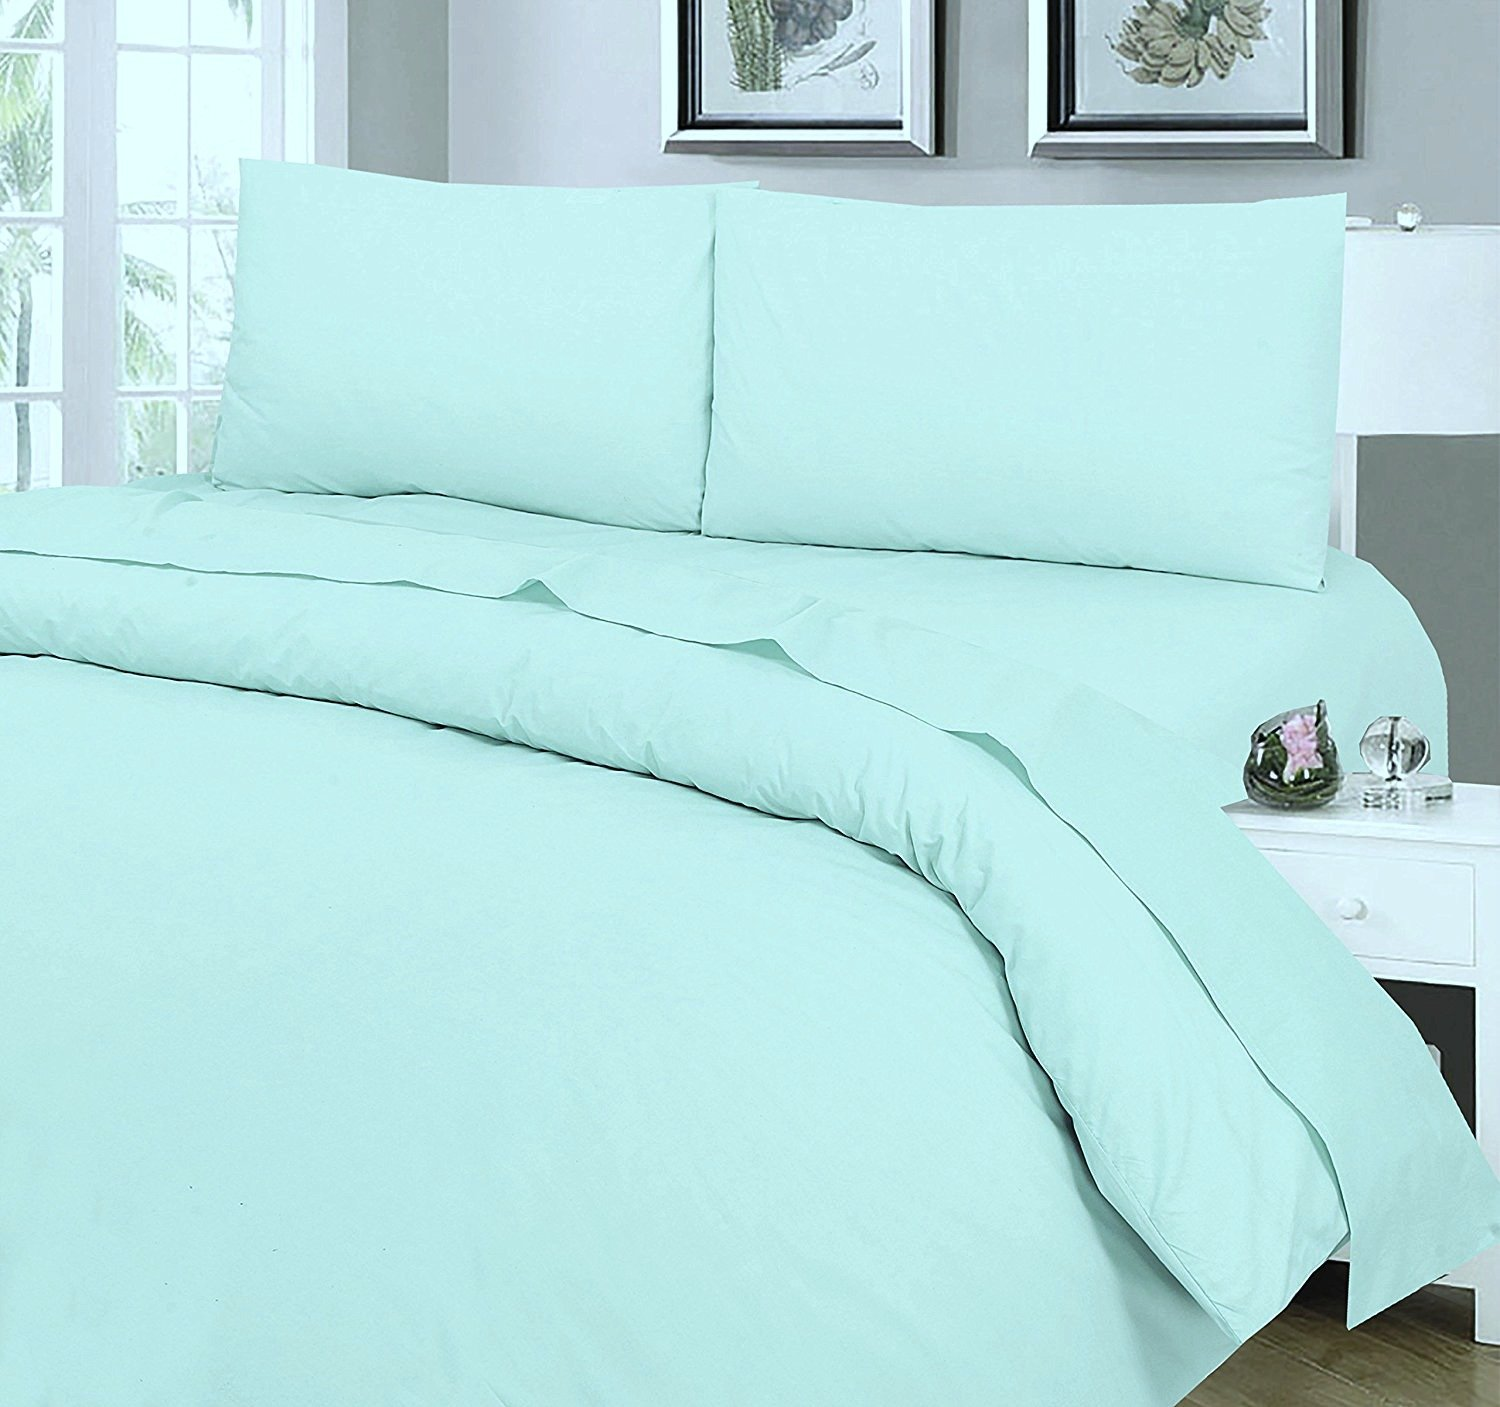 Love2Sleep EGYPTIAN COTTON FITTED SHEET HOTEL QUALITY   4FT (SMALL DOUBLE)  DUCK EGG BLUE: Amazon.co.uk: Kitchen U0026 Home